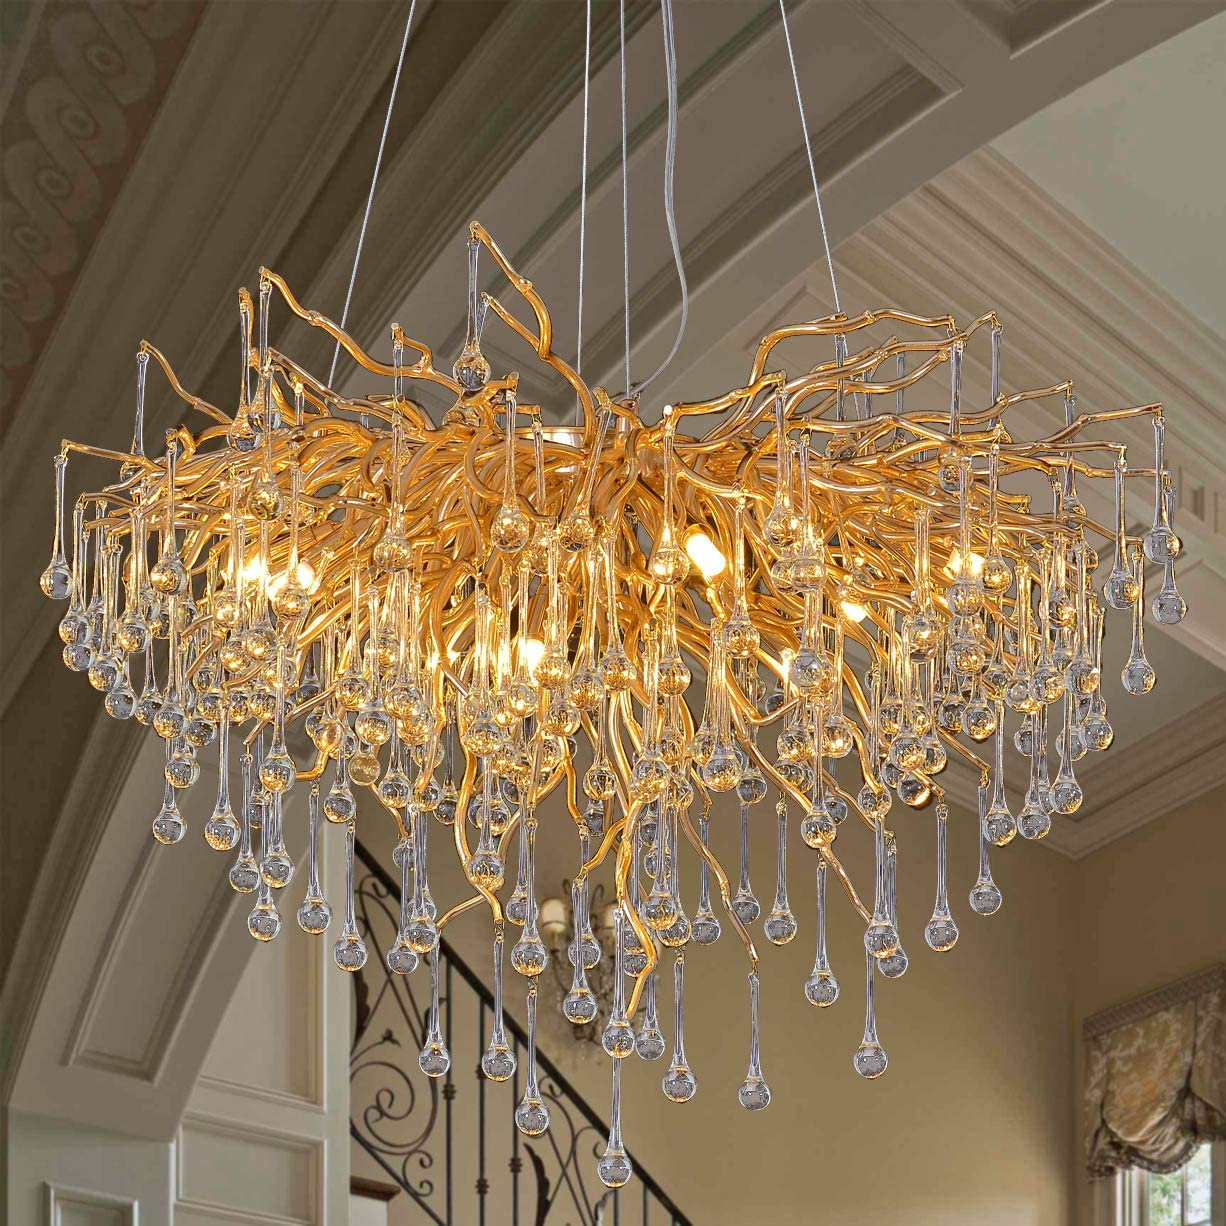 Modern Crystal Chandelier Lighting Ceiling Pendant Dining Room Foyer Entryway Chandeliers Flower Rain-Drop Hanging Light Fixtures Tree Twig Branch Fringe Style Gold Dia 31.5 Round Gold